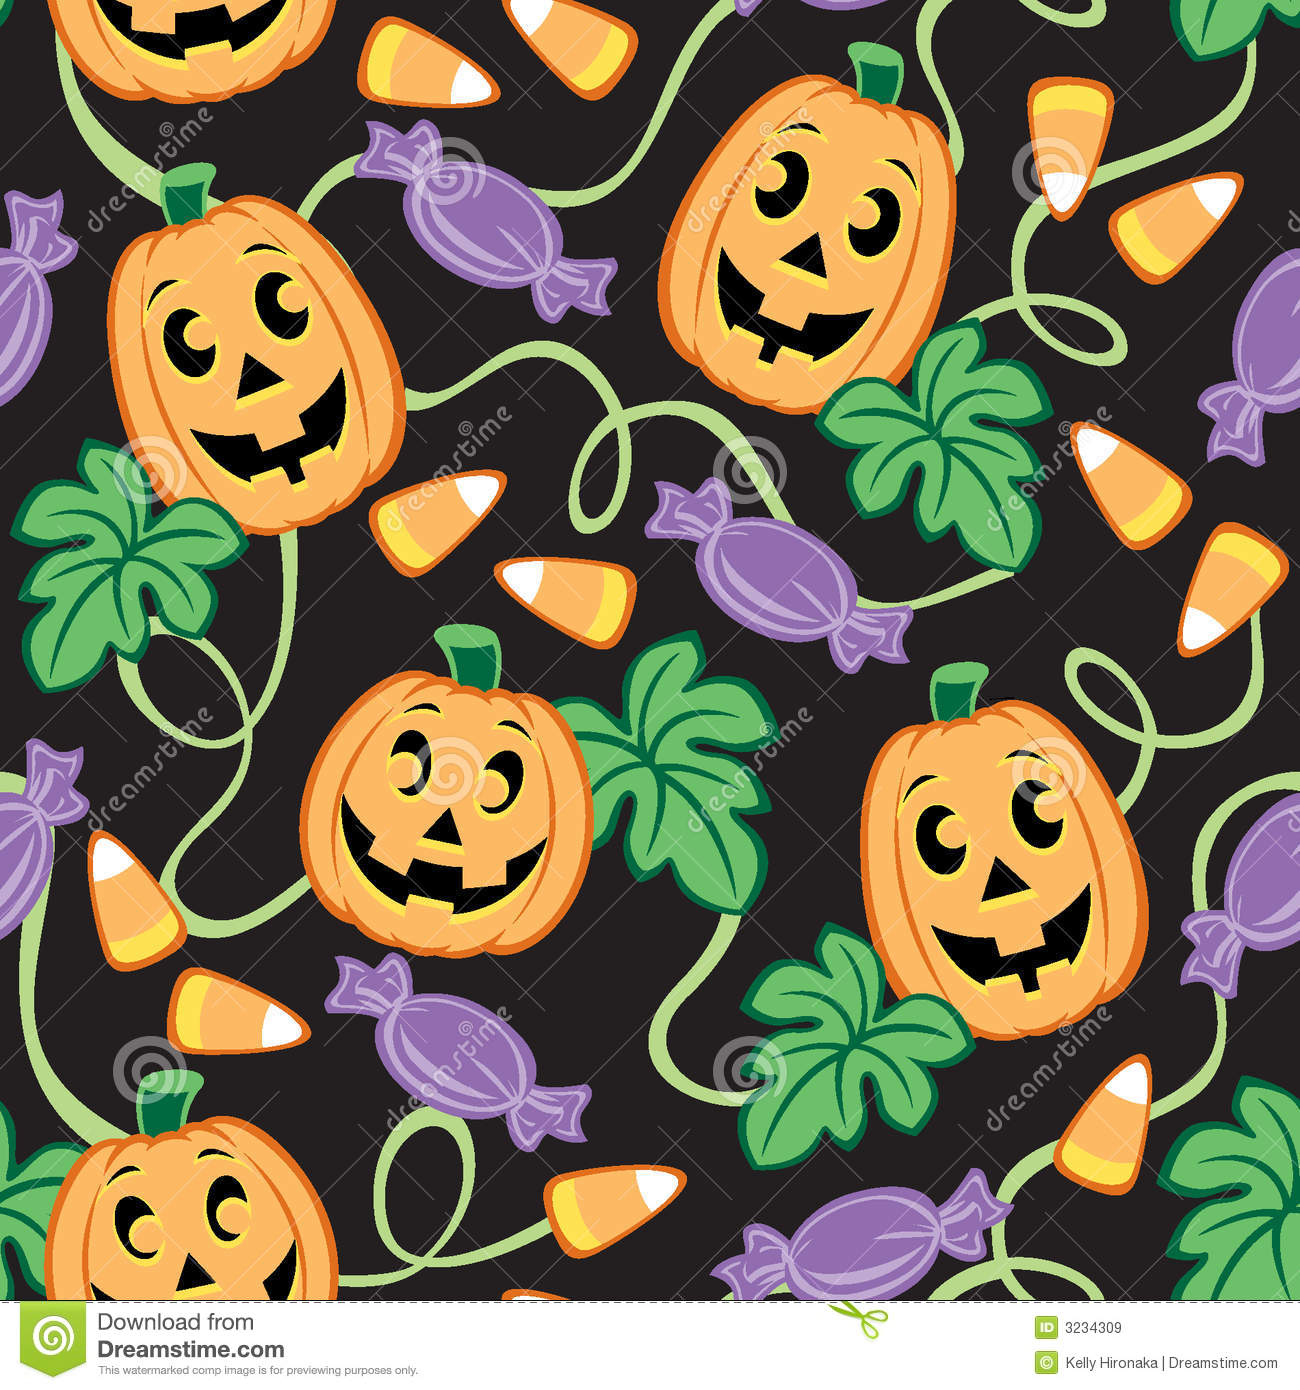 Fall Wallpaper Backgrounds Pumpkins Seamless Halloween Pattern Royalty Free Stock Images